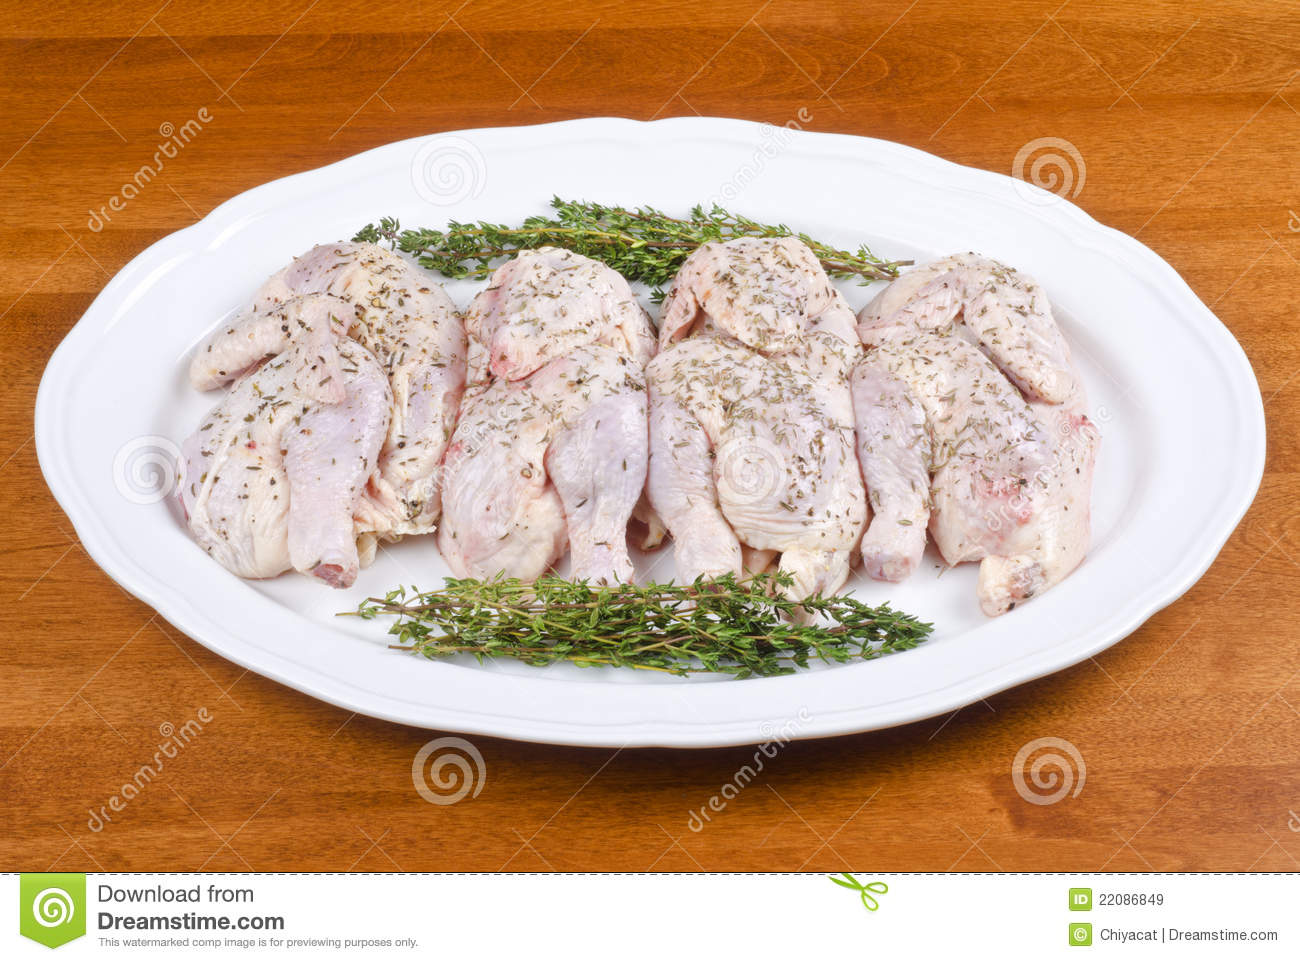 Raw Cornish Game Hen on a White Plate